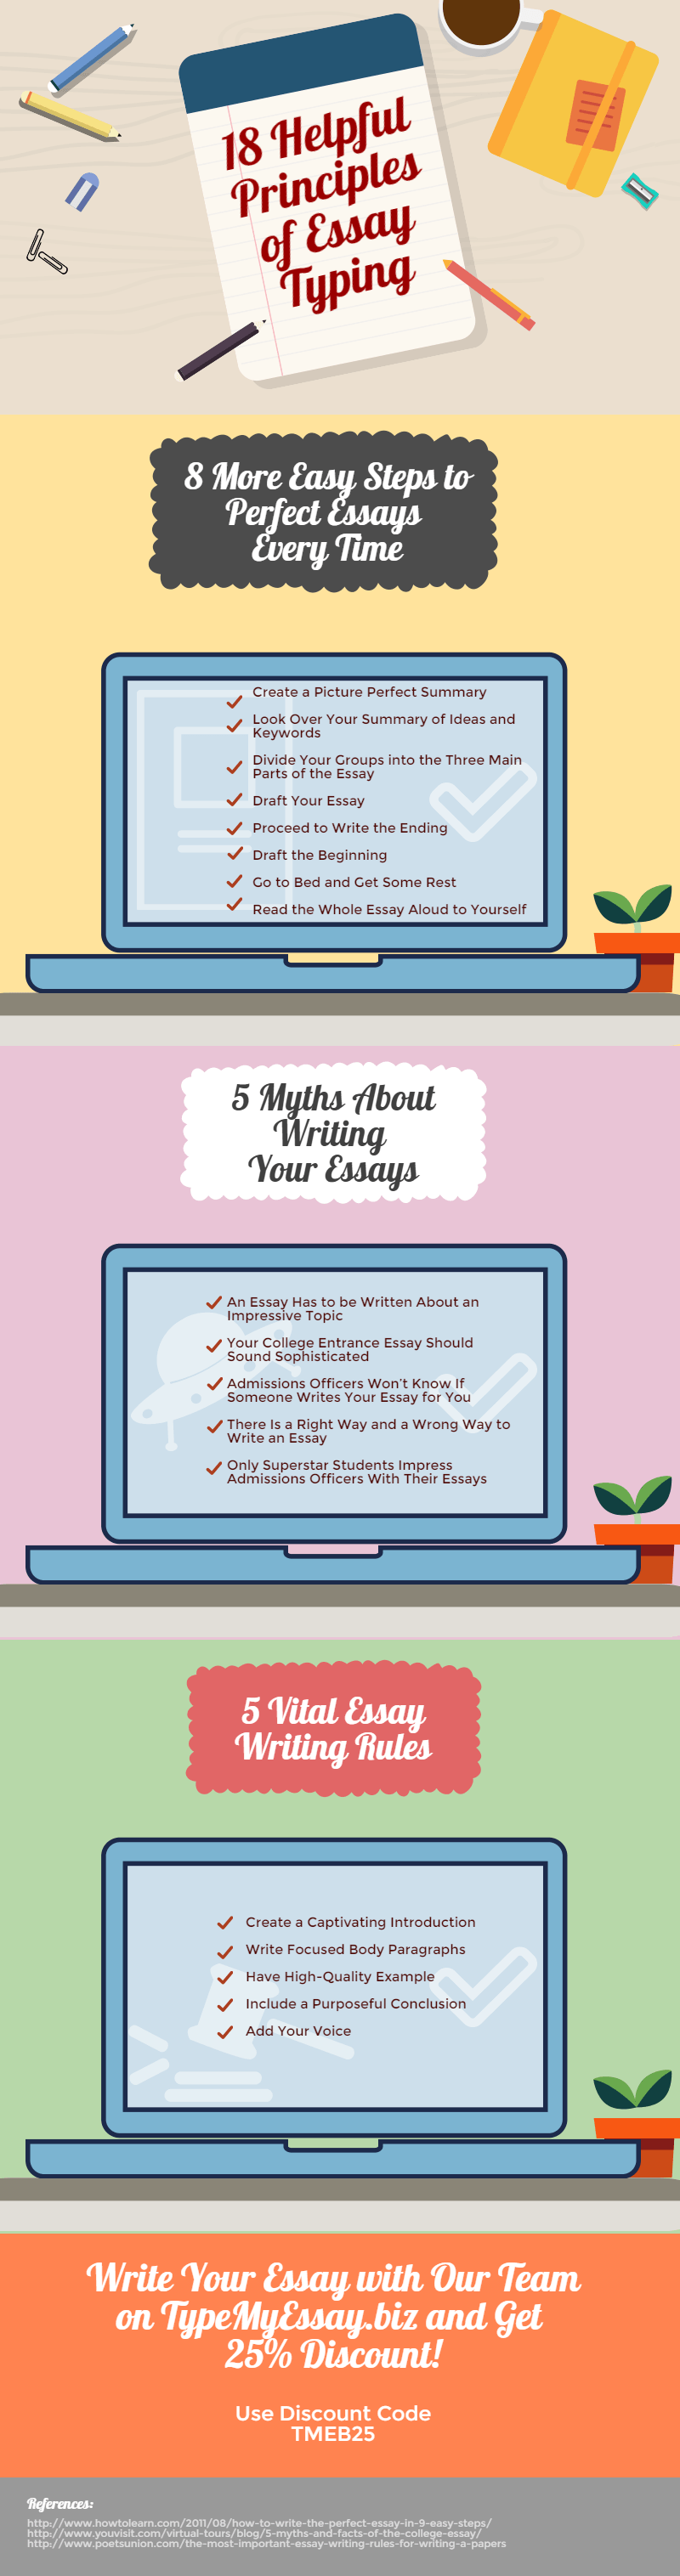 rules for essay writing rule of three how to write great essays  helpful principles of essay writing infographic e learning 18 helpful principles of essay writing infographic